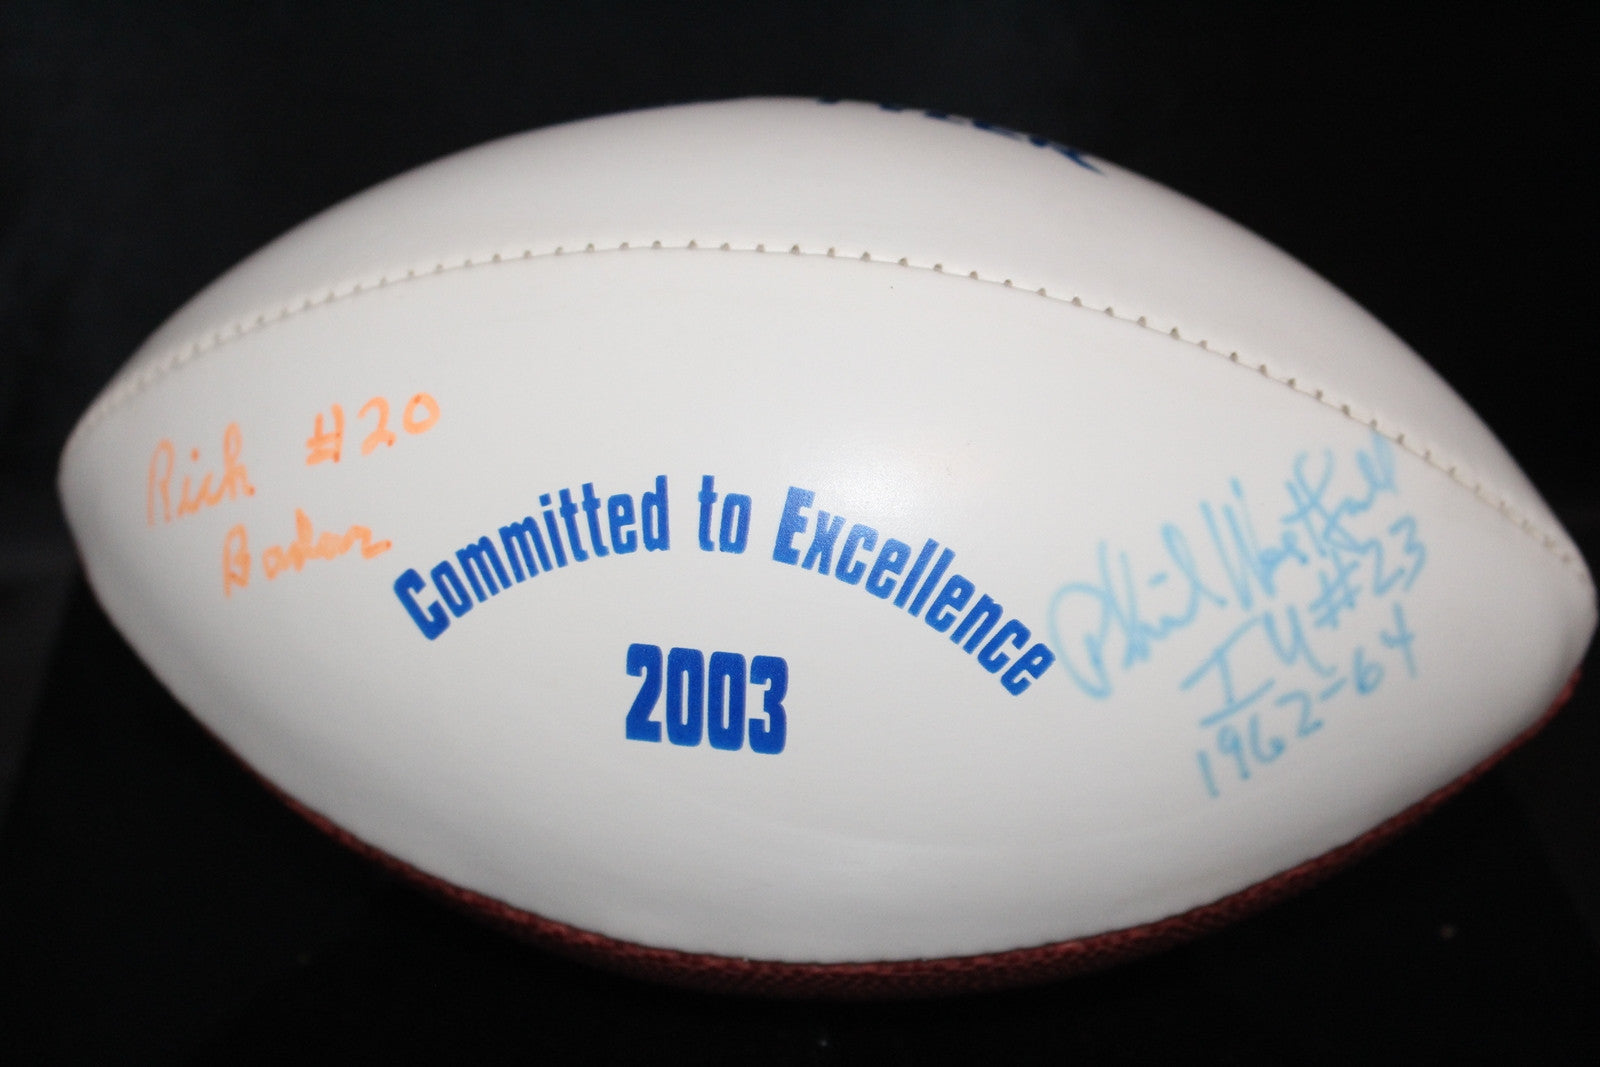 Rick Bader, Phil Westfall Autographed Mini Football, Indiana University - Vintage Indy Sports